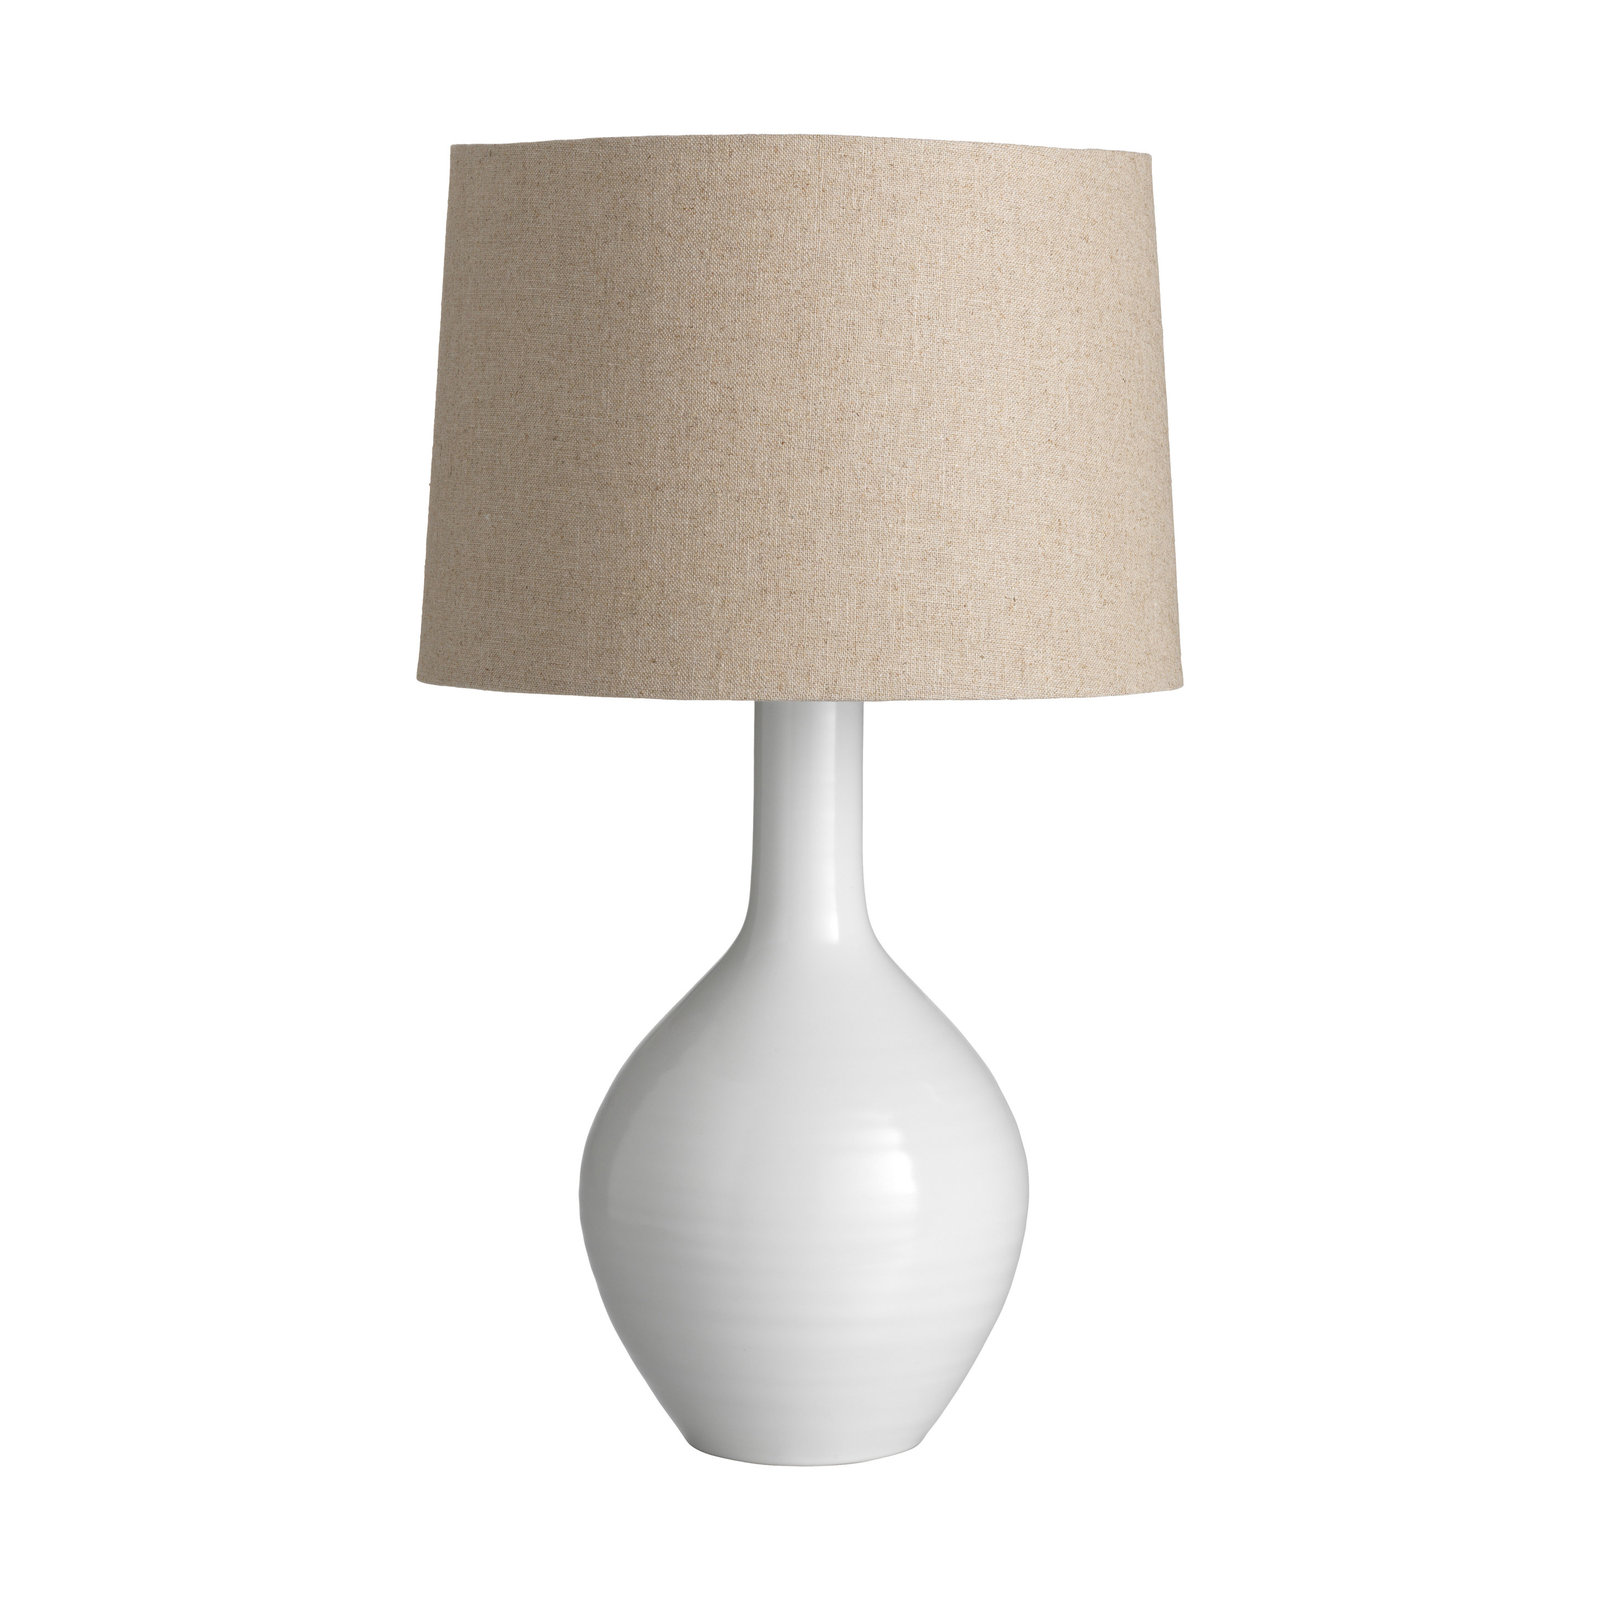 Simon Pearce Tall Lamp 30 In Shade Not Included